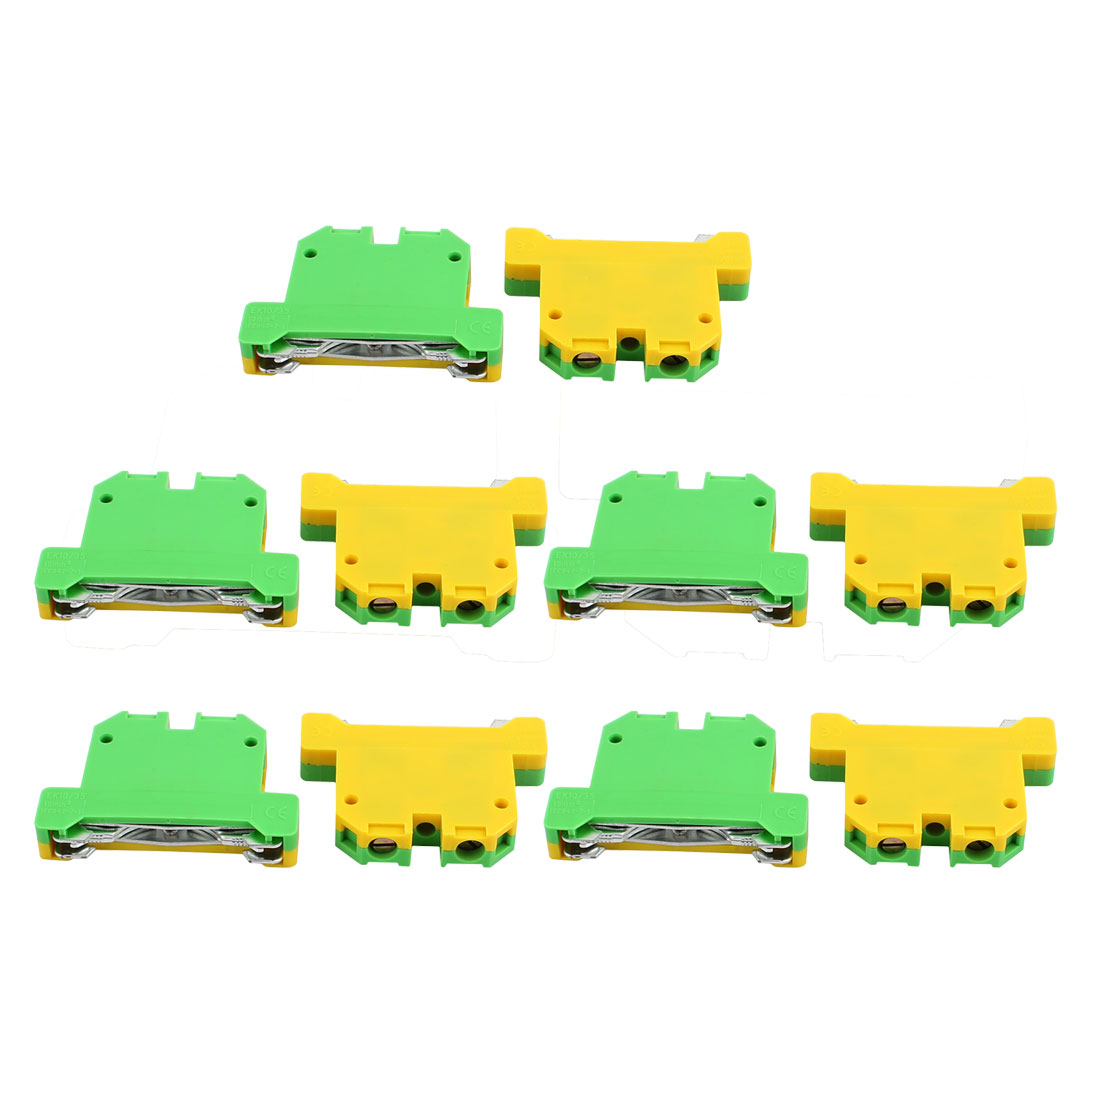 10Pcs 57x42x10mm 10mm2 Wire 800V Universal Grounding Terminal Block Yellow Green